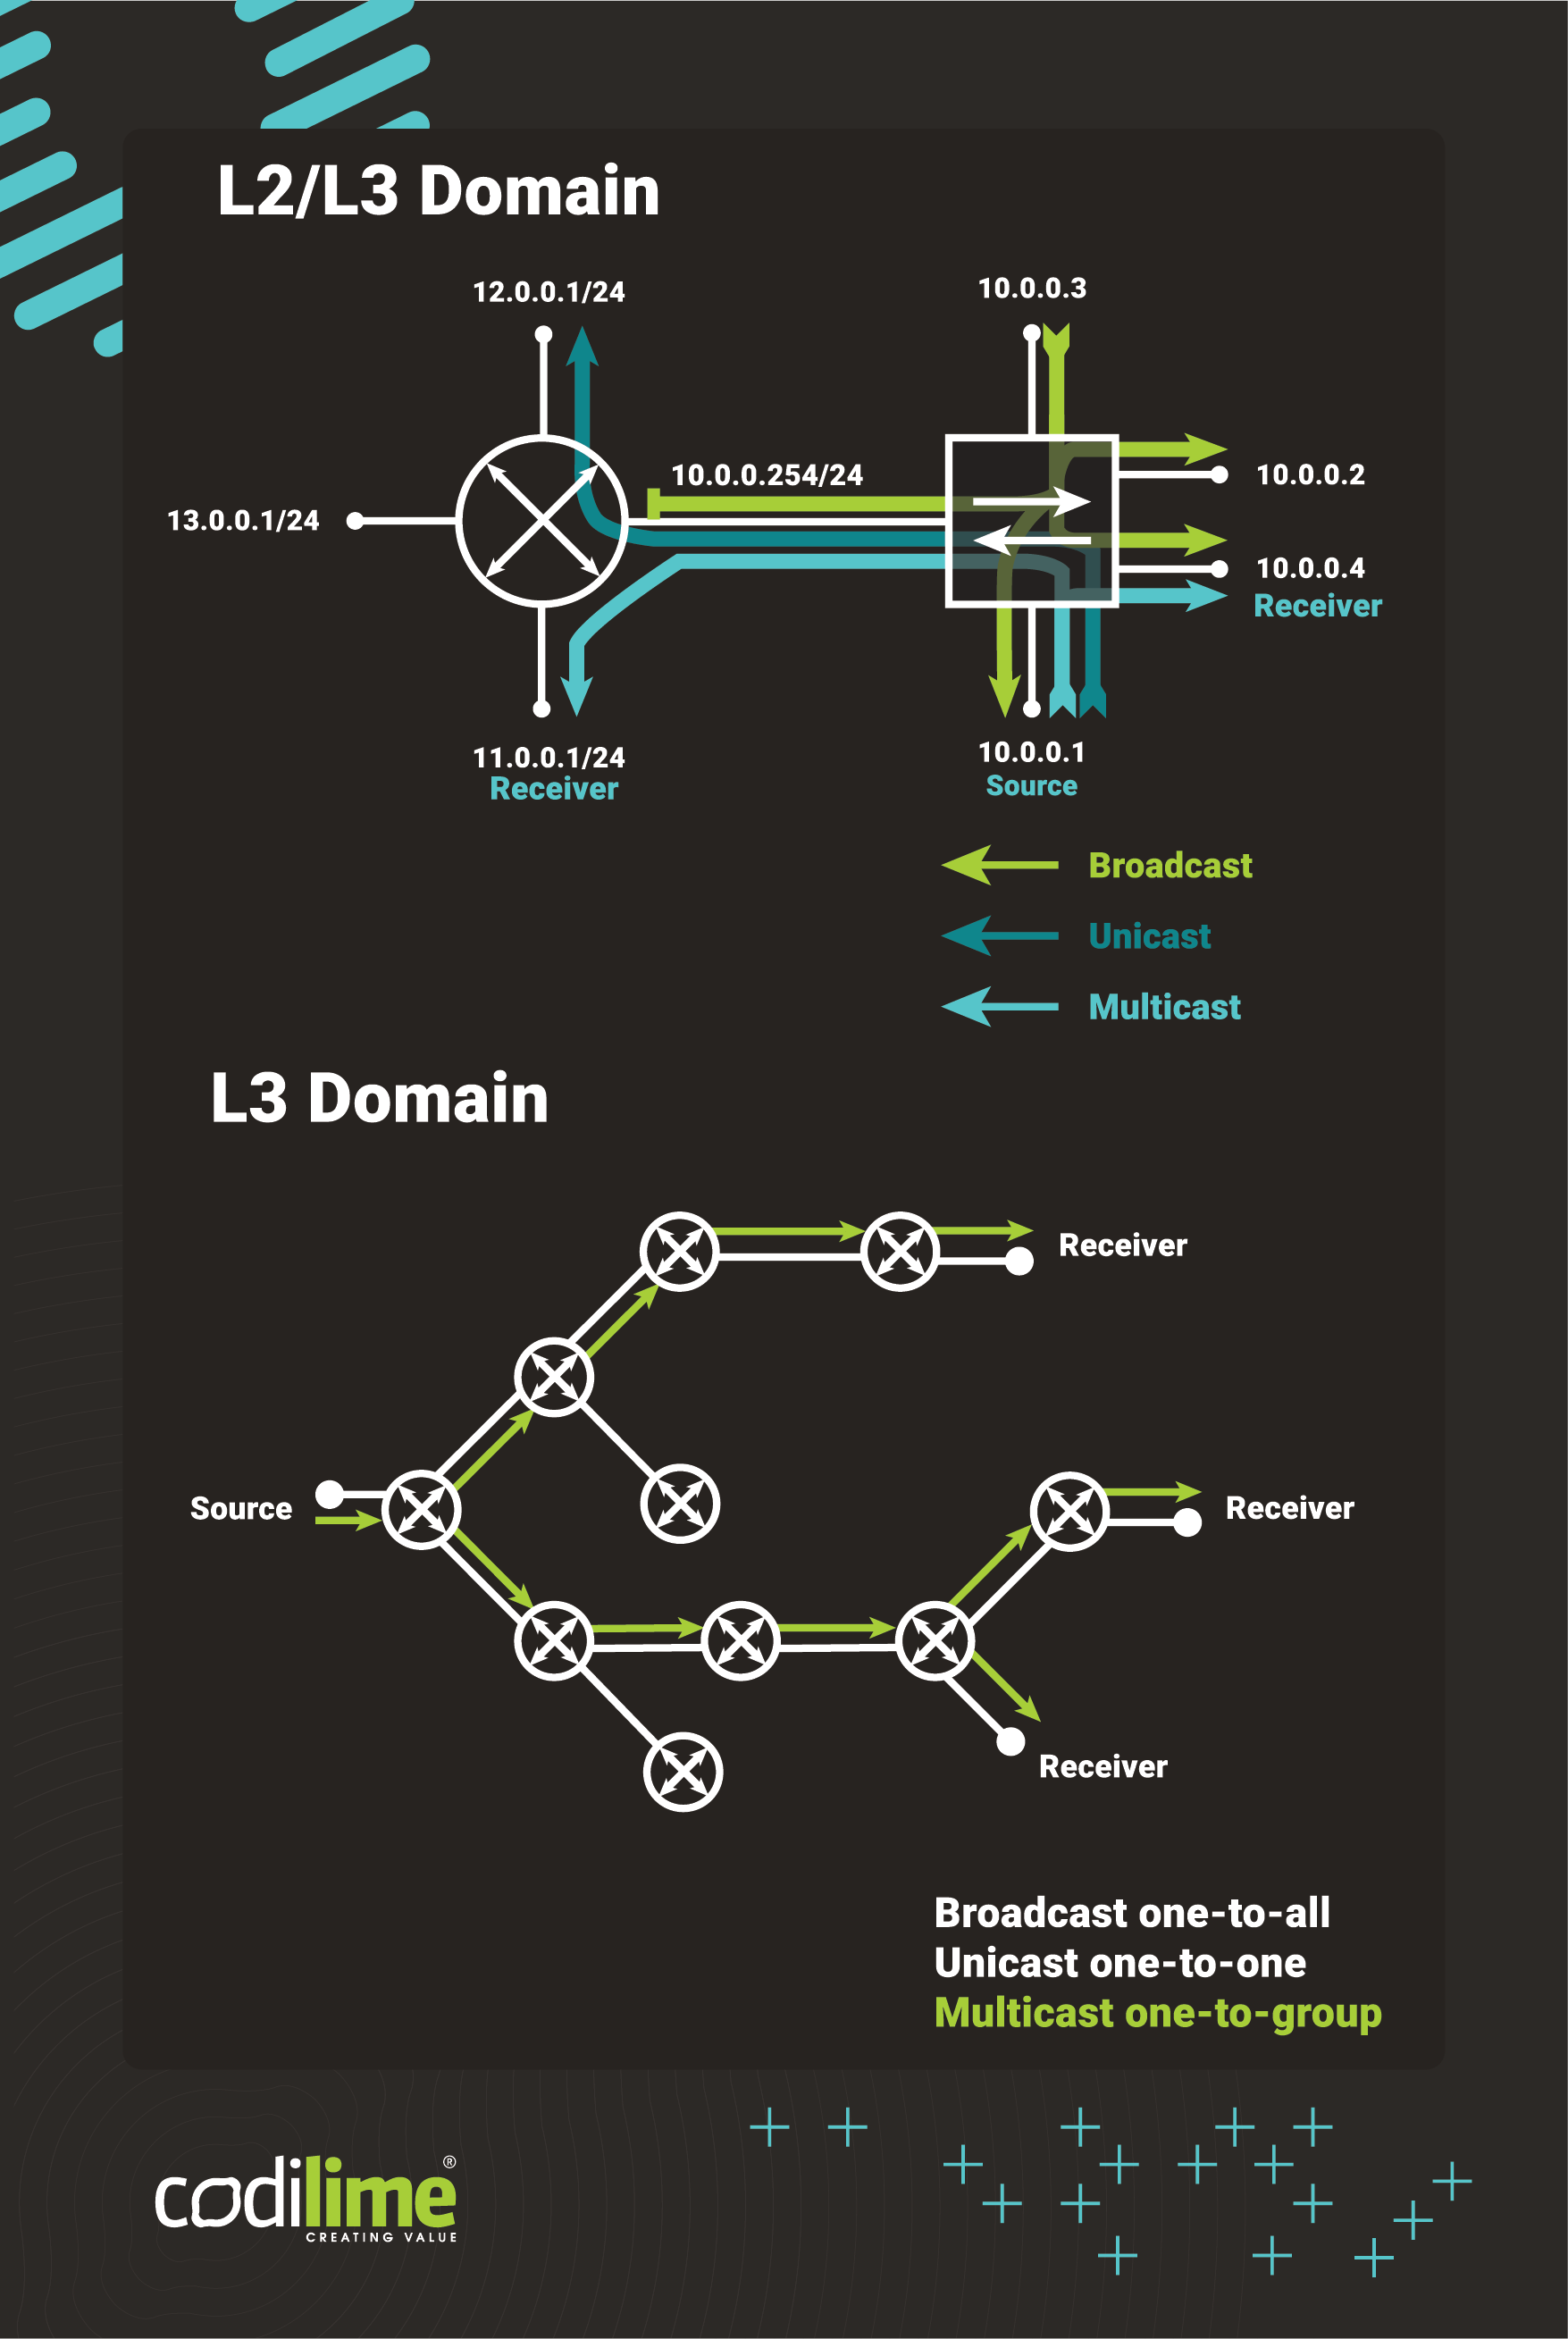 BUM traffic in the L2 and L3 domains